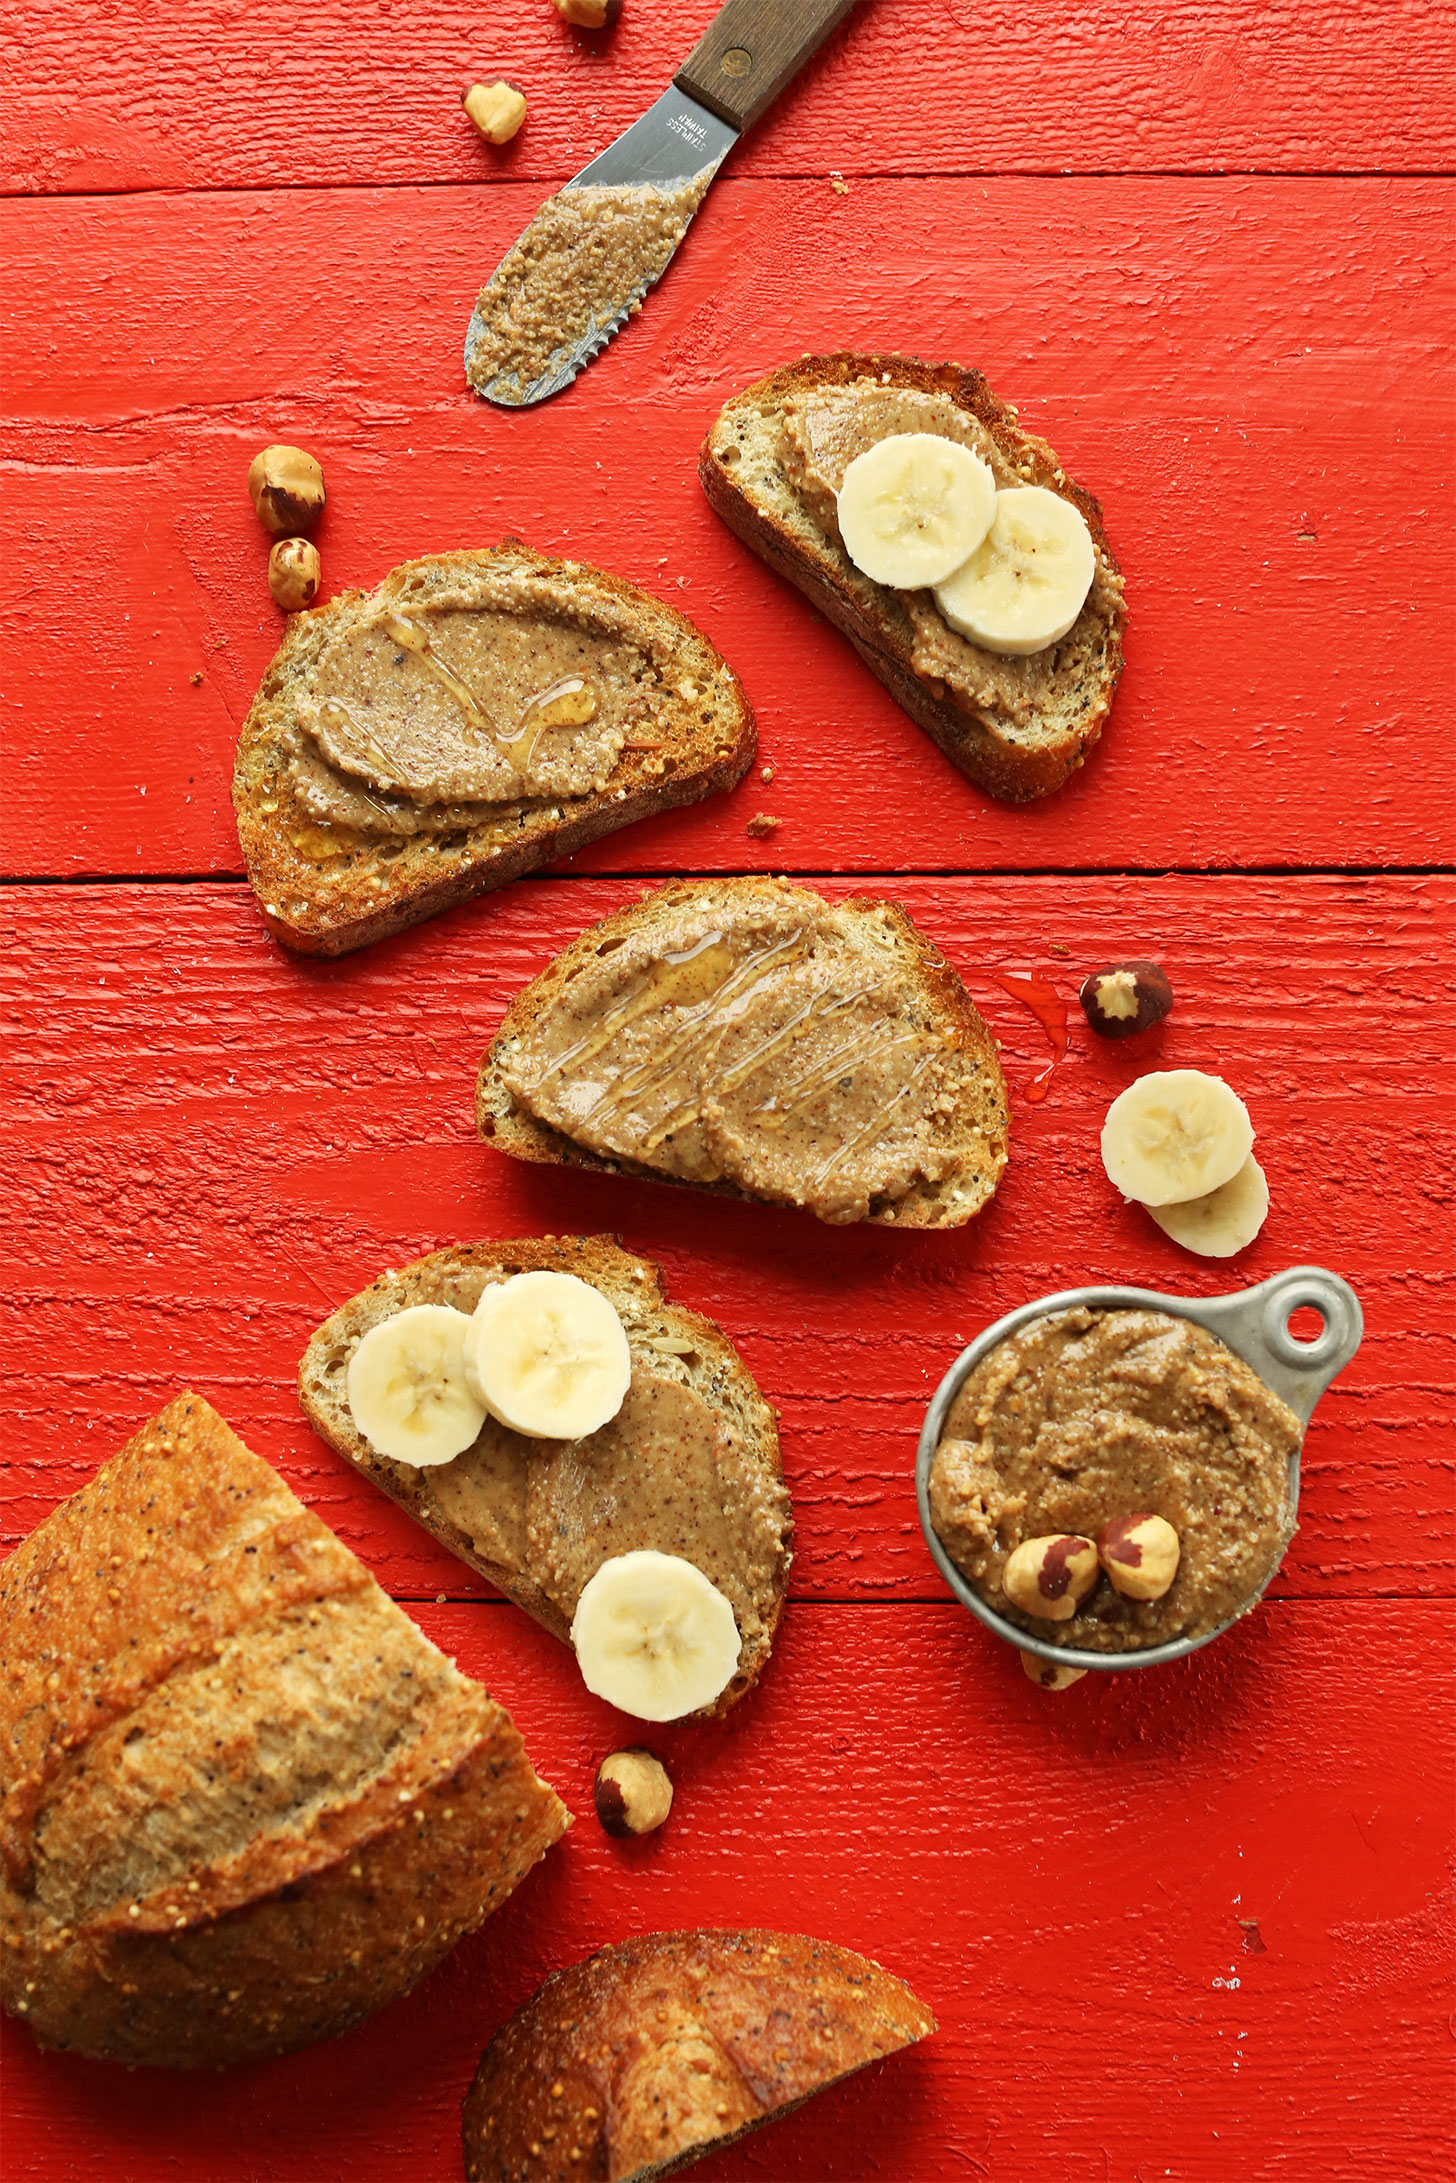 Sliced gluten-free bread topped with creamy homemade hazelnuts butter, honey, and peanut butter